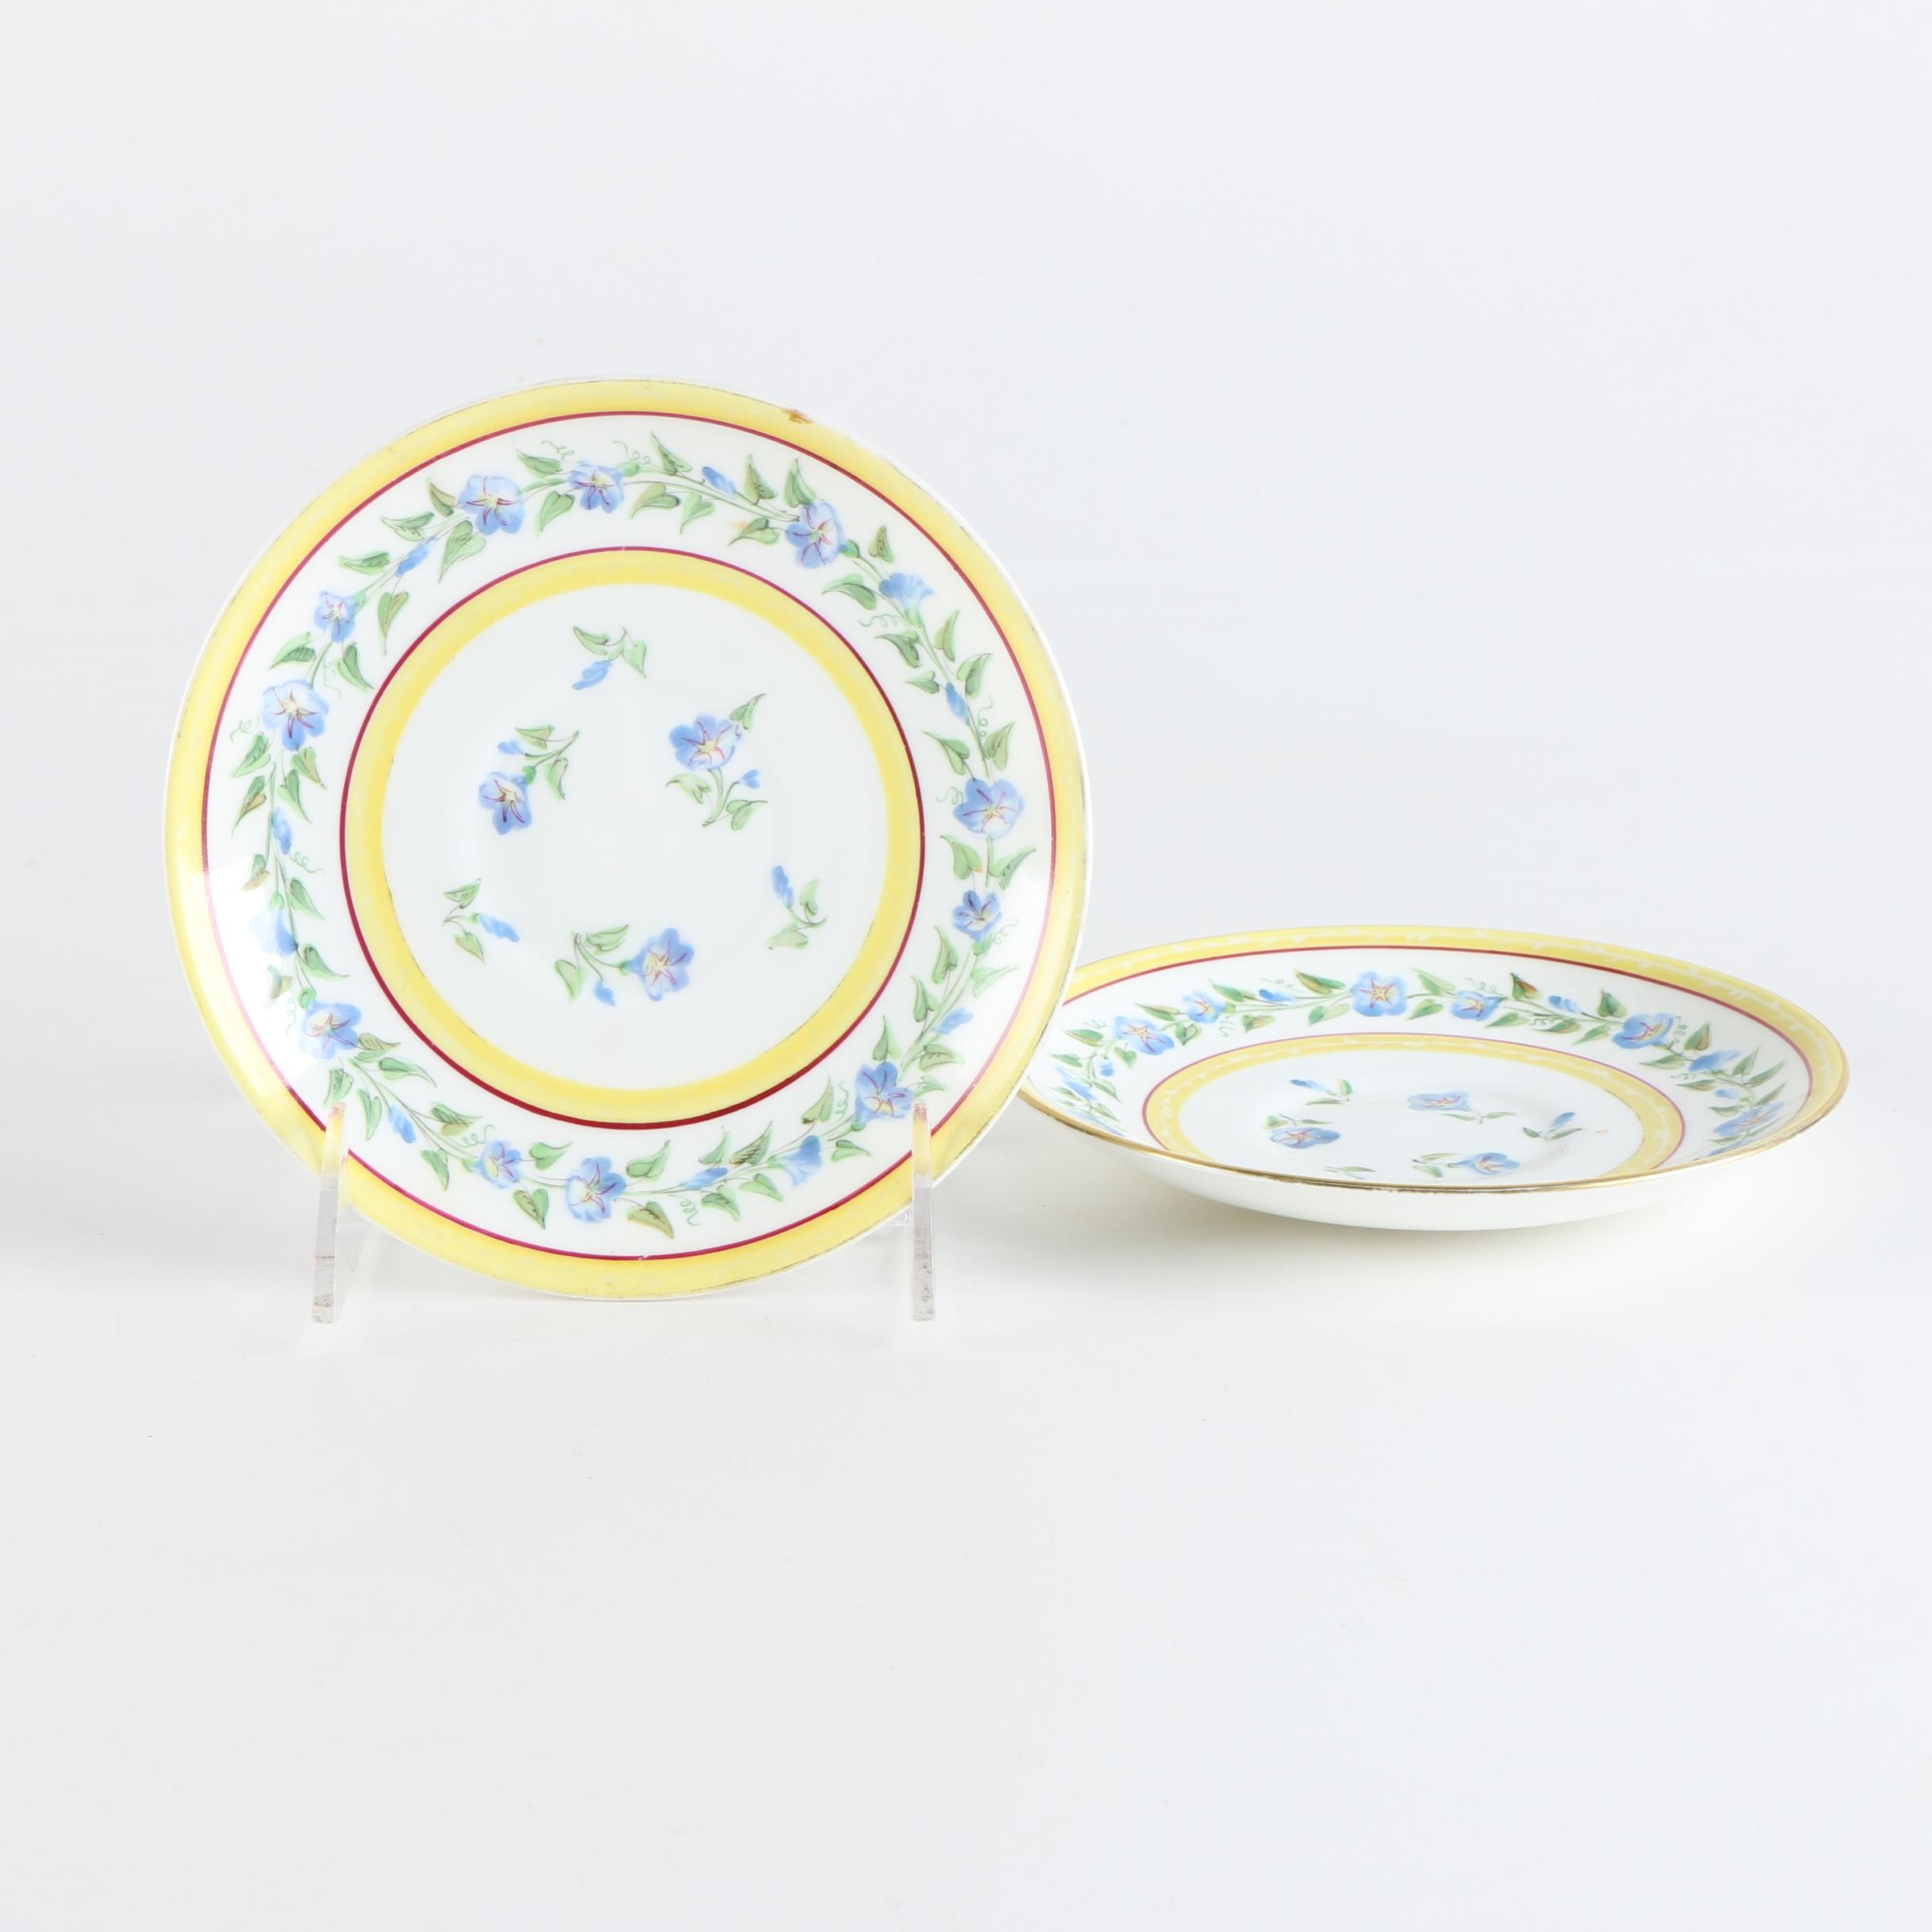 Antique French Hand-Painted Porcelain Plates